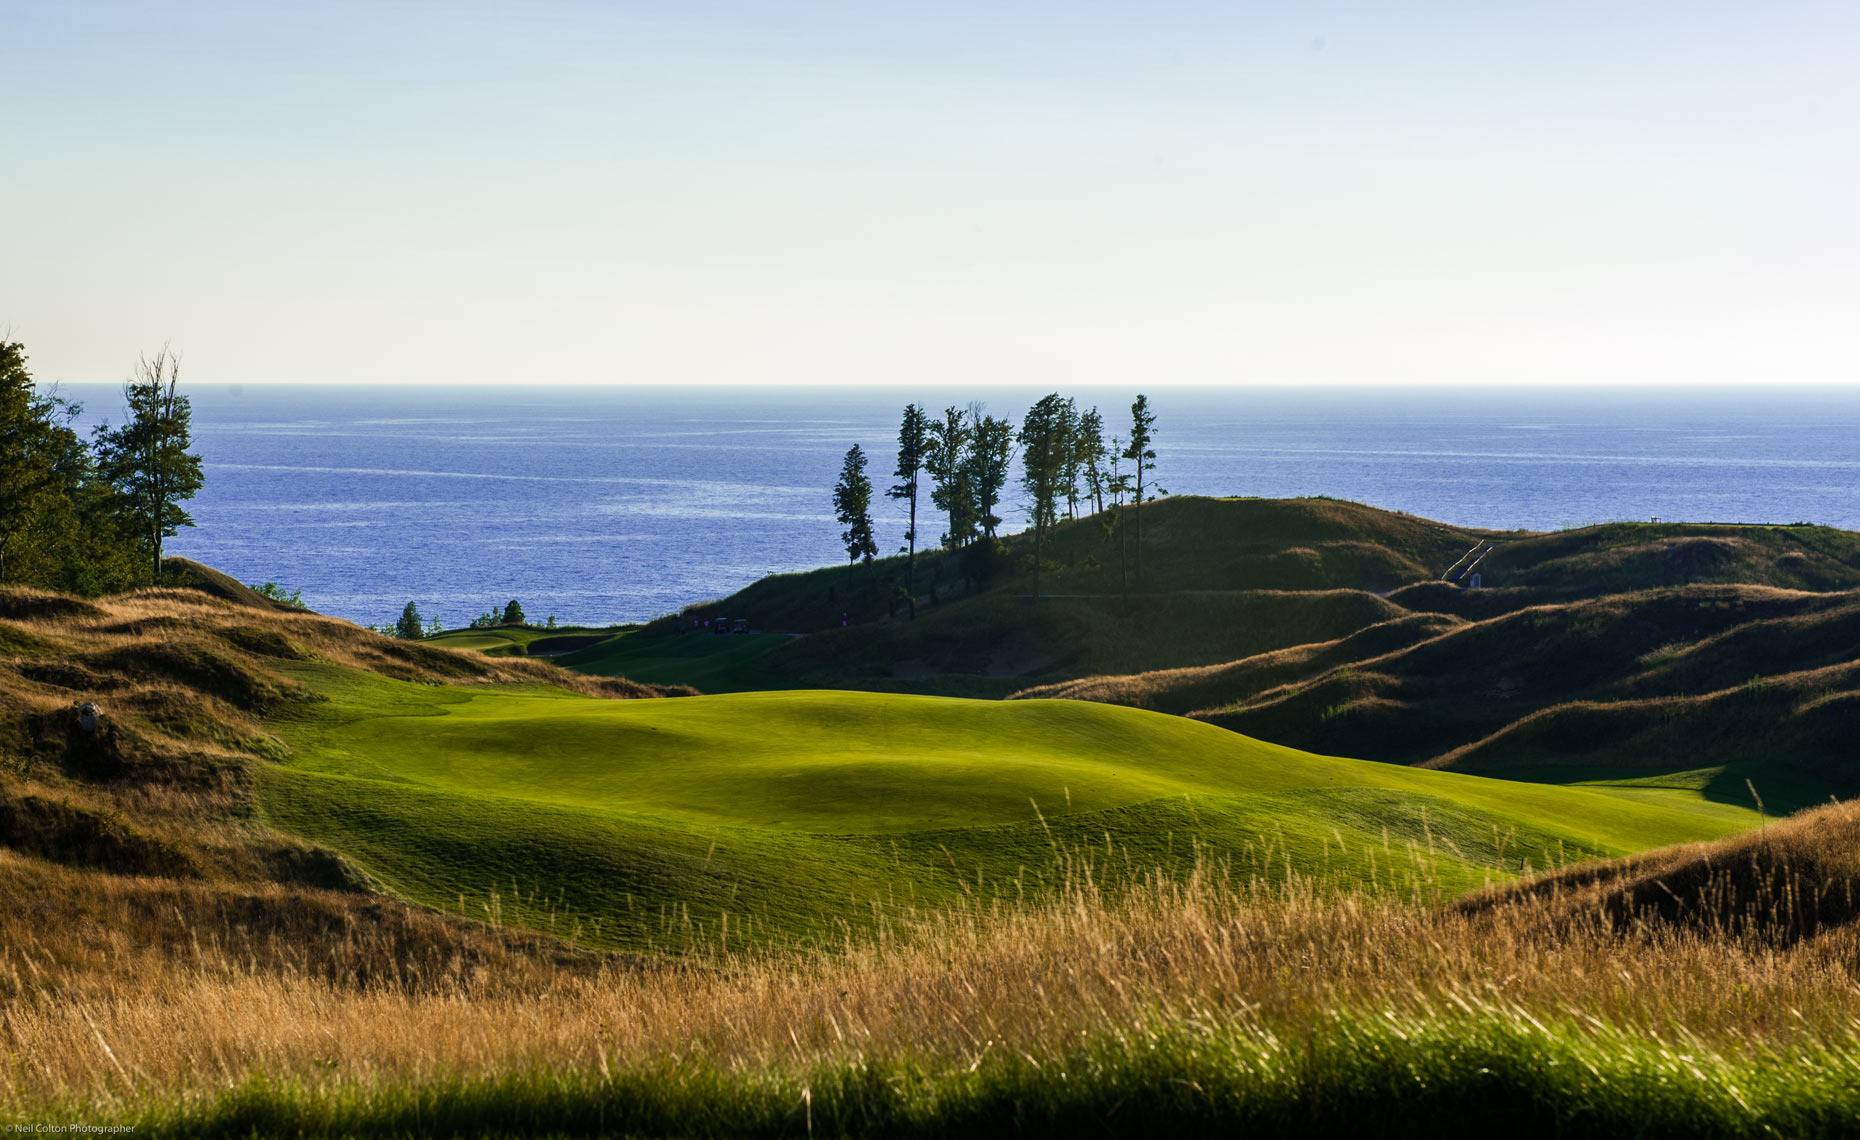 Neil-Colton-lifestyle-photographre-arcadia-bluffs-gc-3